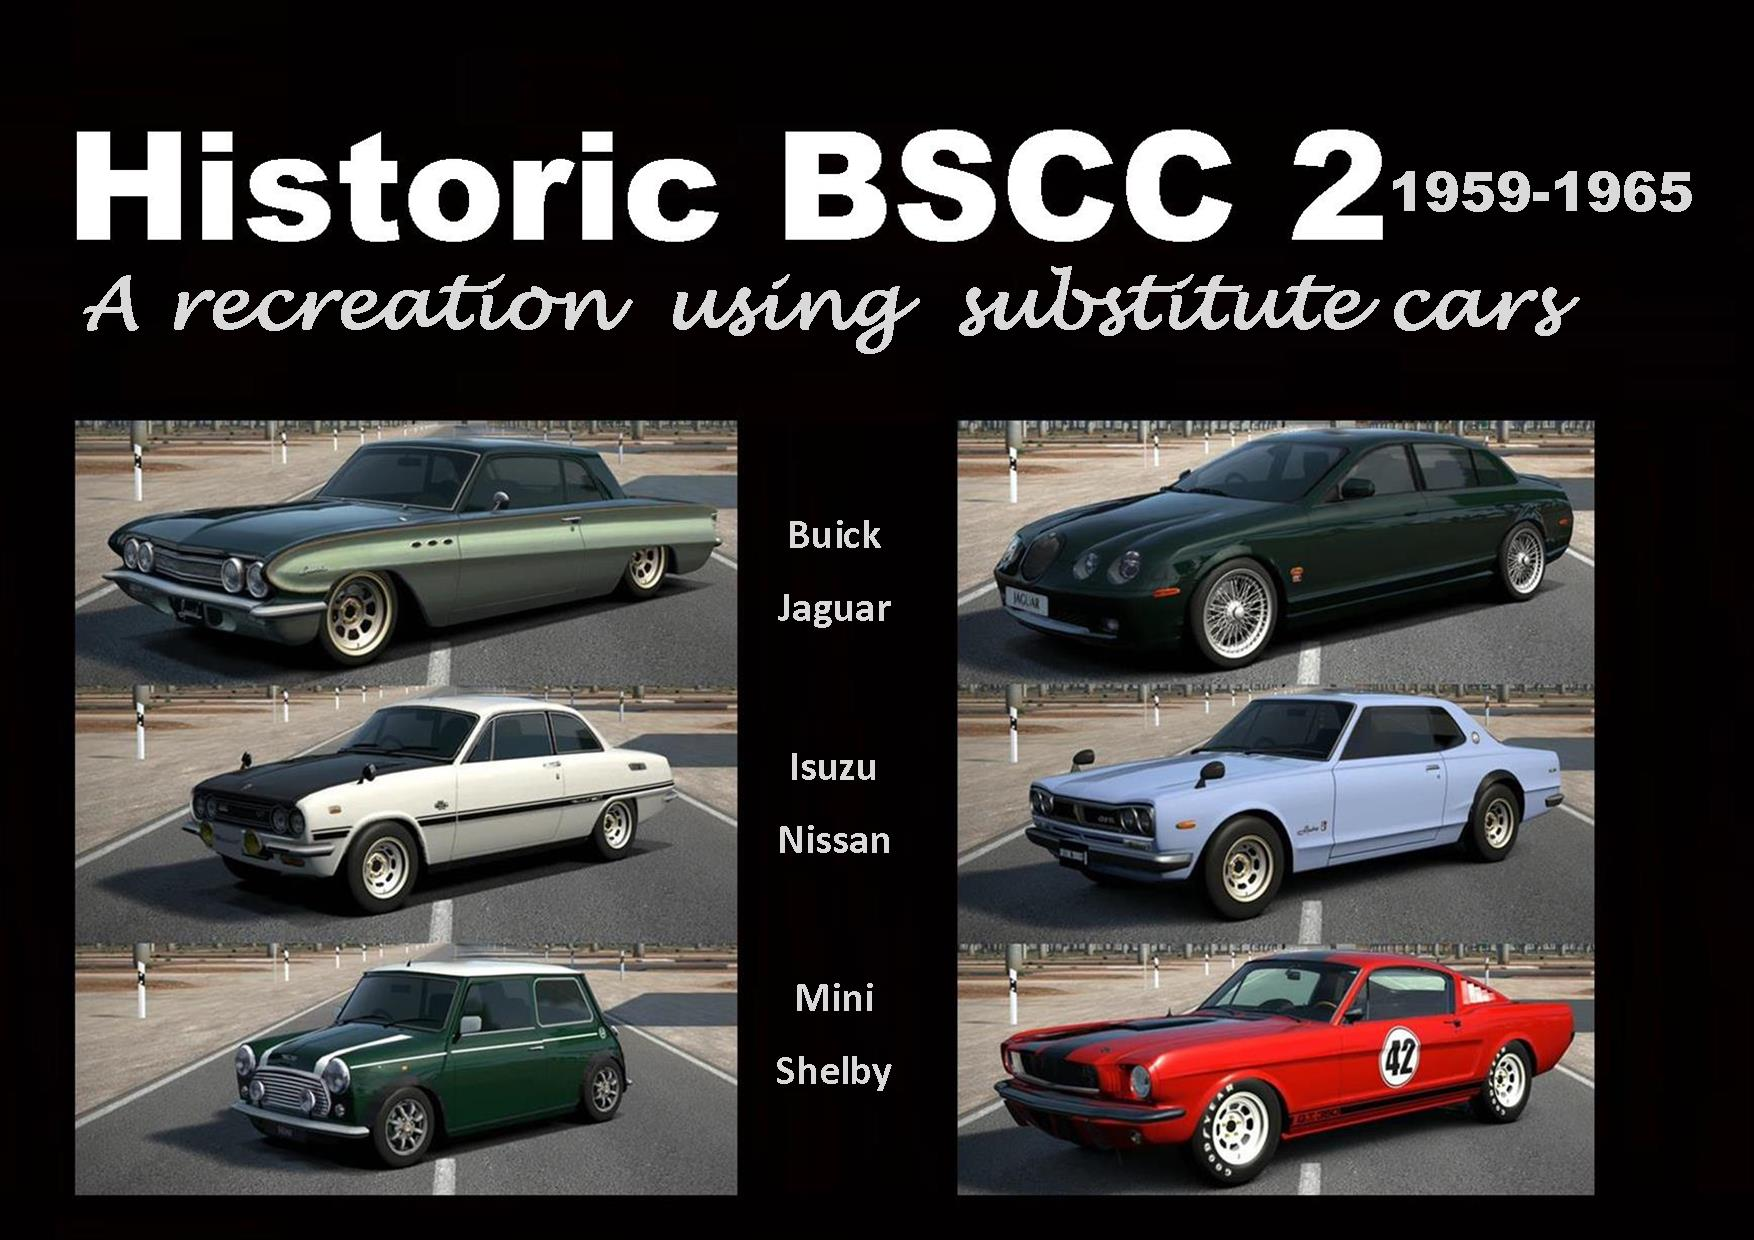 Historic BSCC Poster New Final.jpg